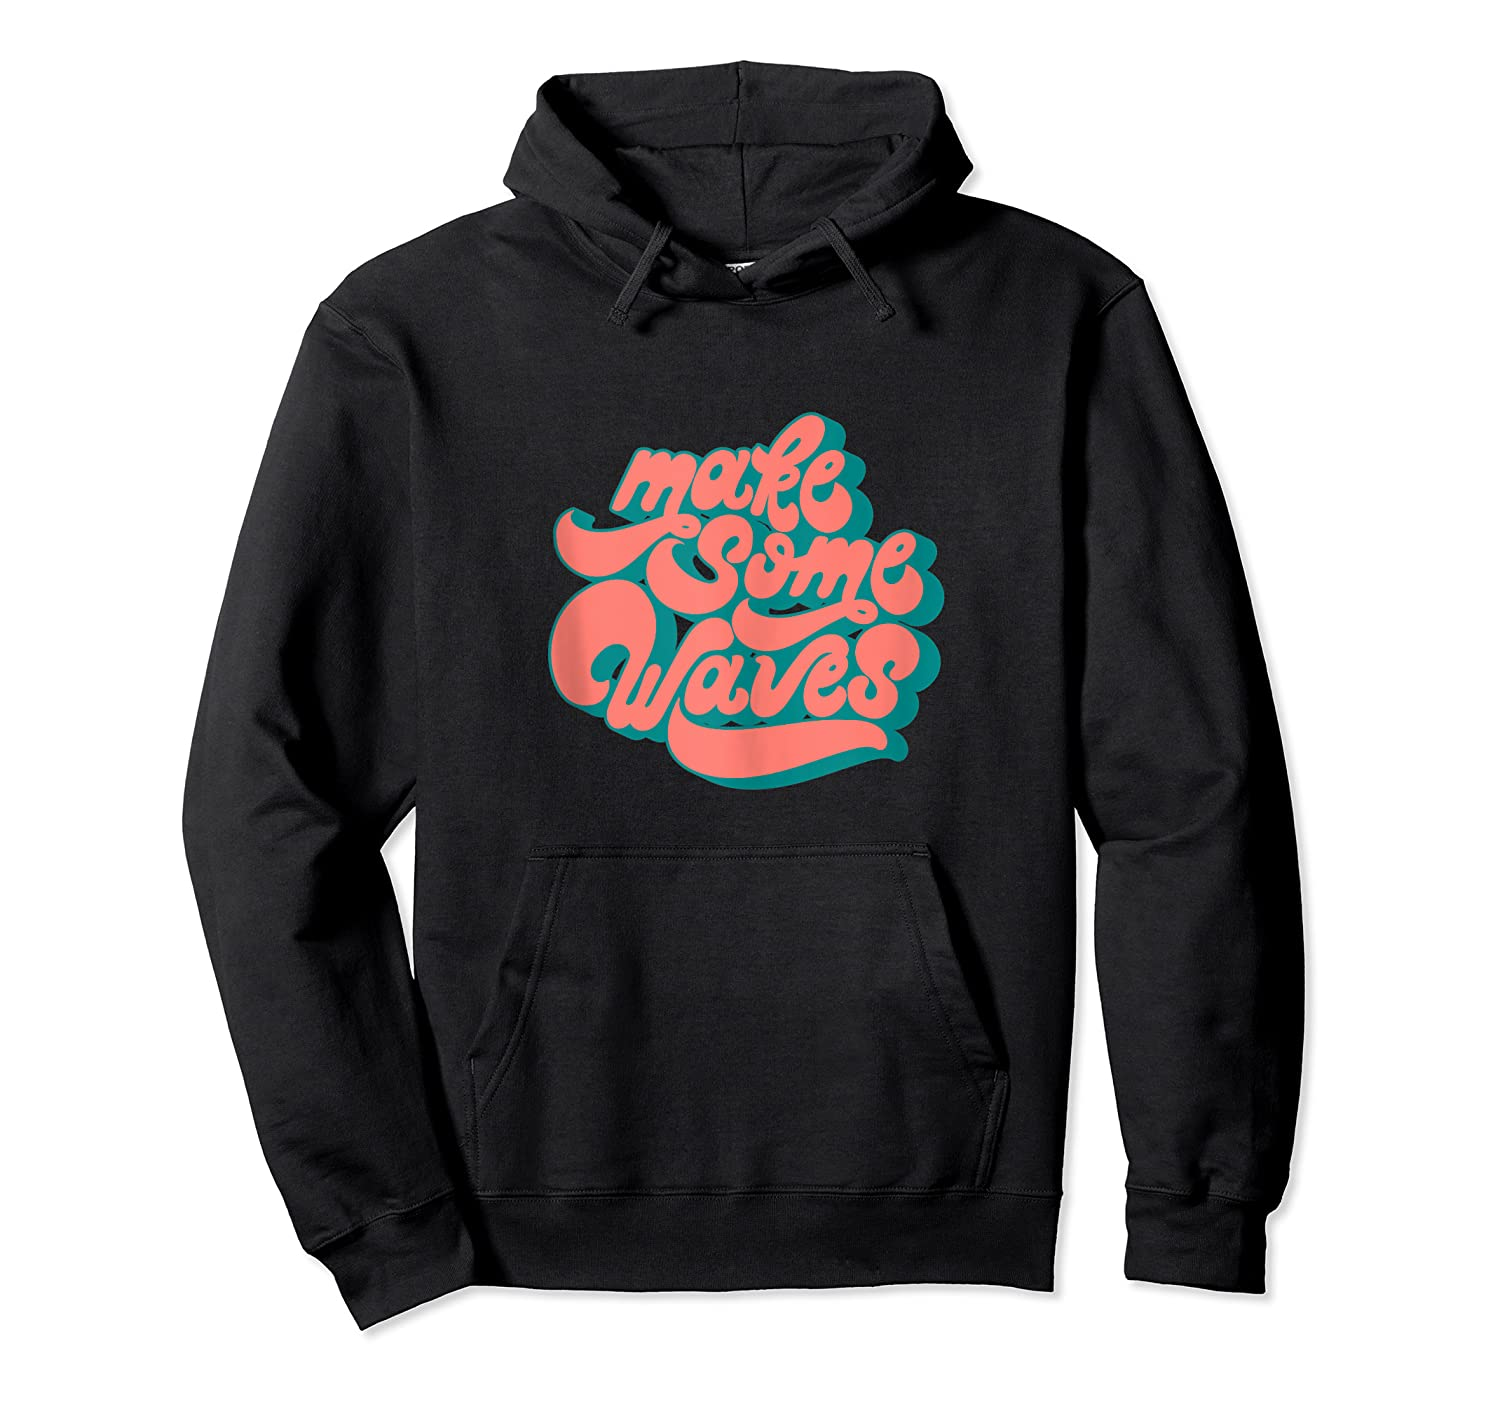 Vintage Retro Vibes - Make Some Waves Tank Top Shirts Unisex Pullover Hoodie